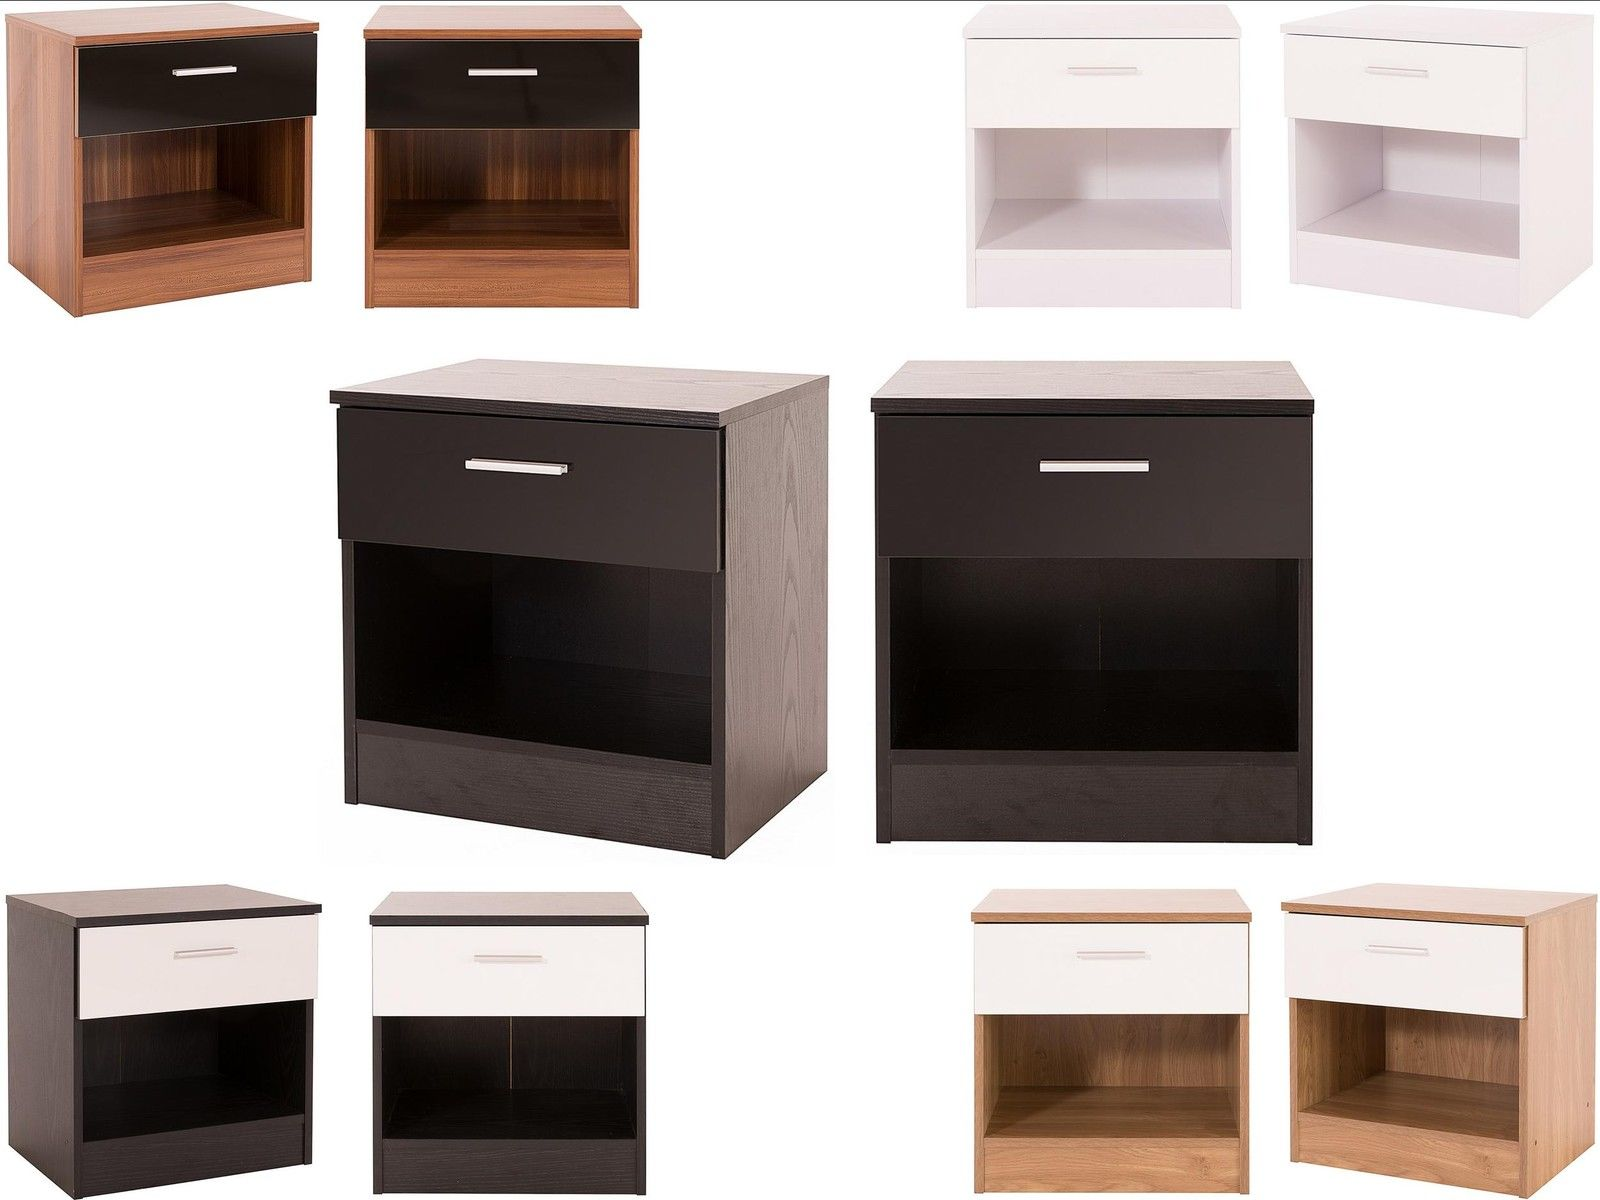 Caspian Supreme High Gloss Pair Of Bedside Cabinets